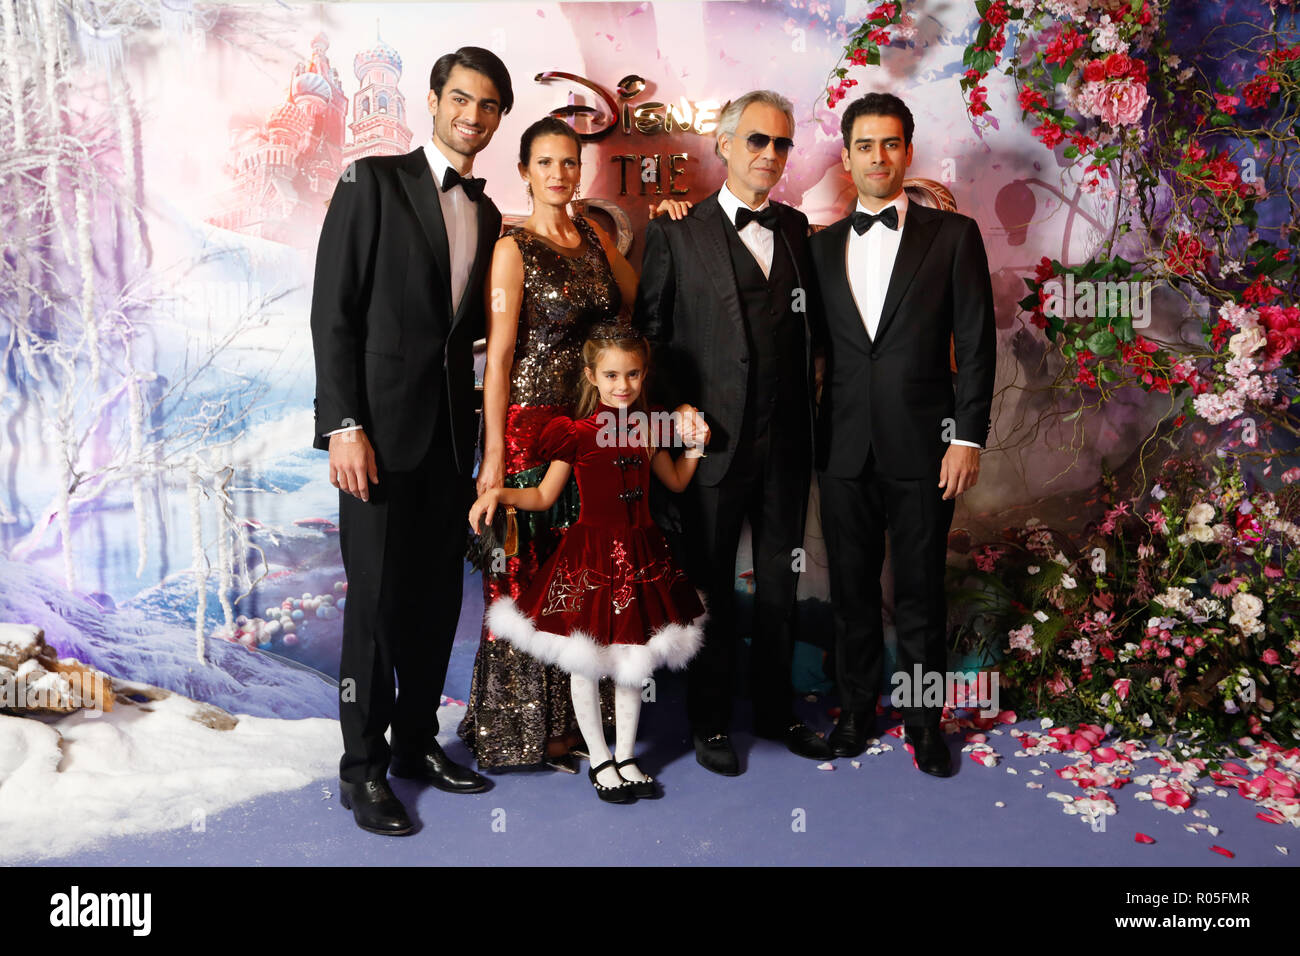 Andrea Bocelli, Matteo Bocelli and family attending the European Premiere of The Nutcracker and the Four Realms held at the Vue, Westfield London. PRESS ASSOCIATION Photo. Picture date: Thursday November 1, 2018. Photo credit should read: David Parry/PA Wire - Stock Image